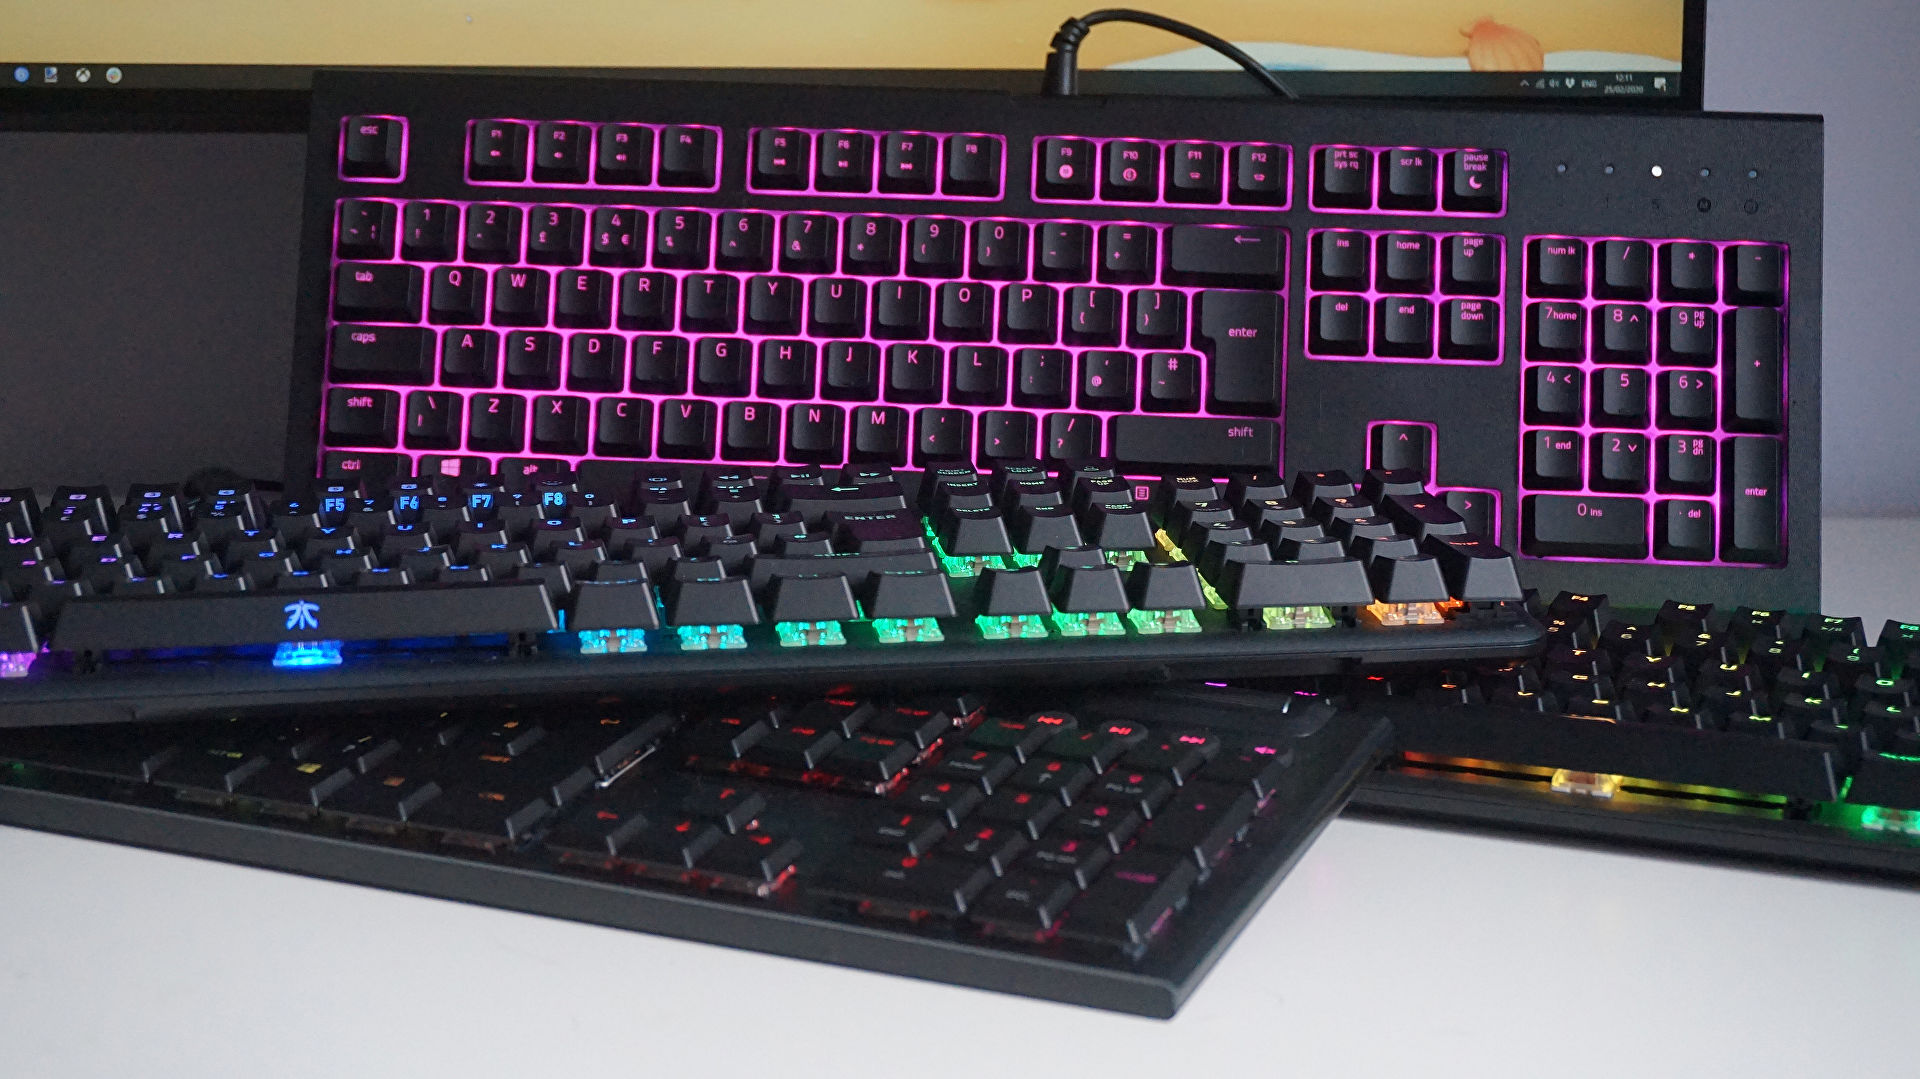 Best gaming keyboard 2021: the top mechanical and wireless keyboards for gaming